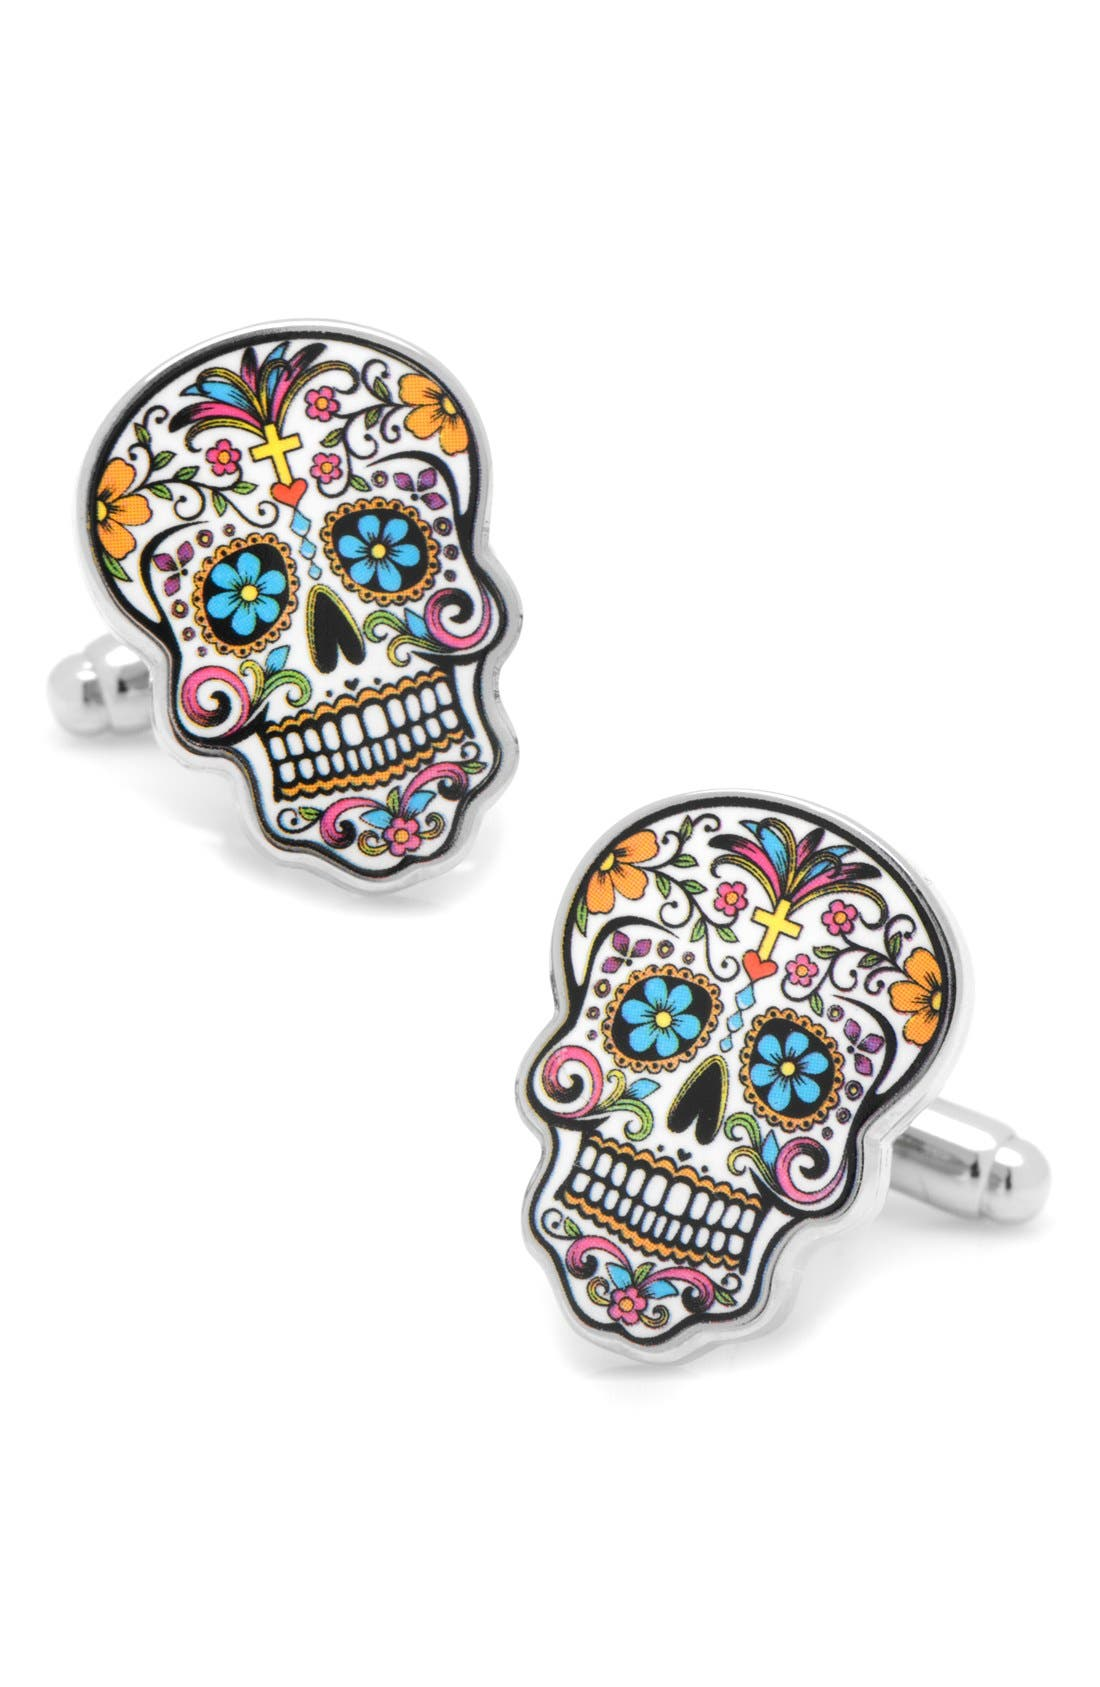 'Day of the Dead' Cuff Links,                             Main thumbnail 1, color,                             040